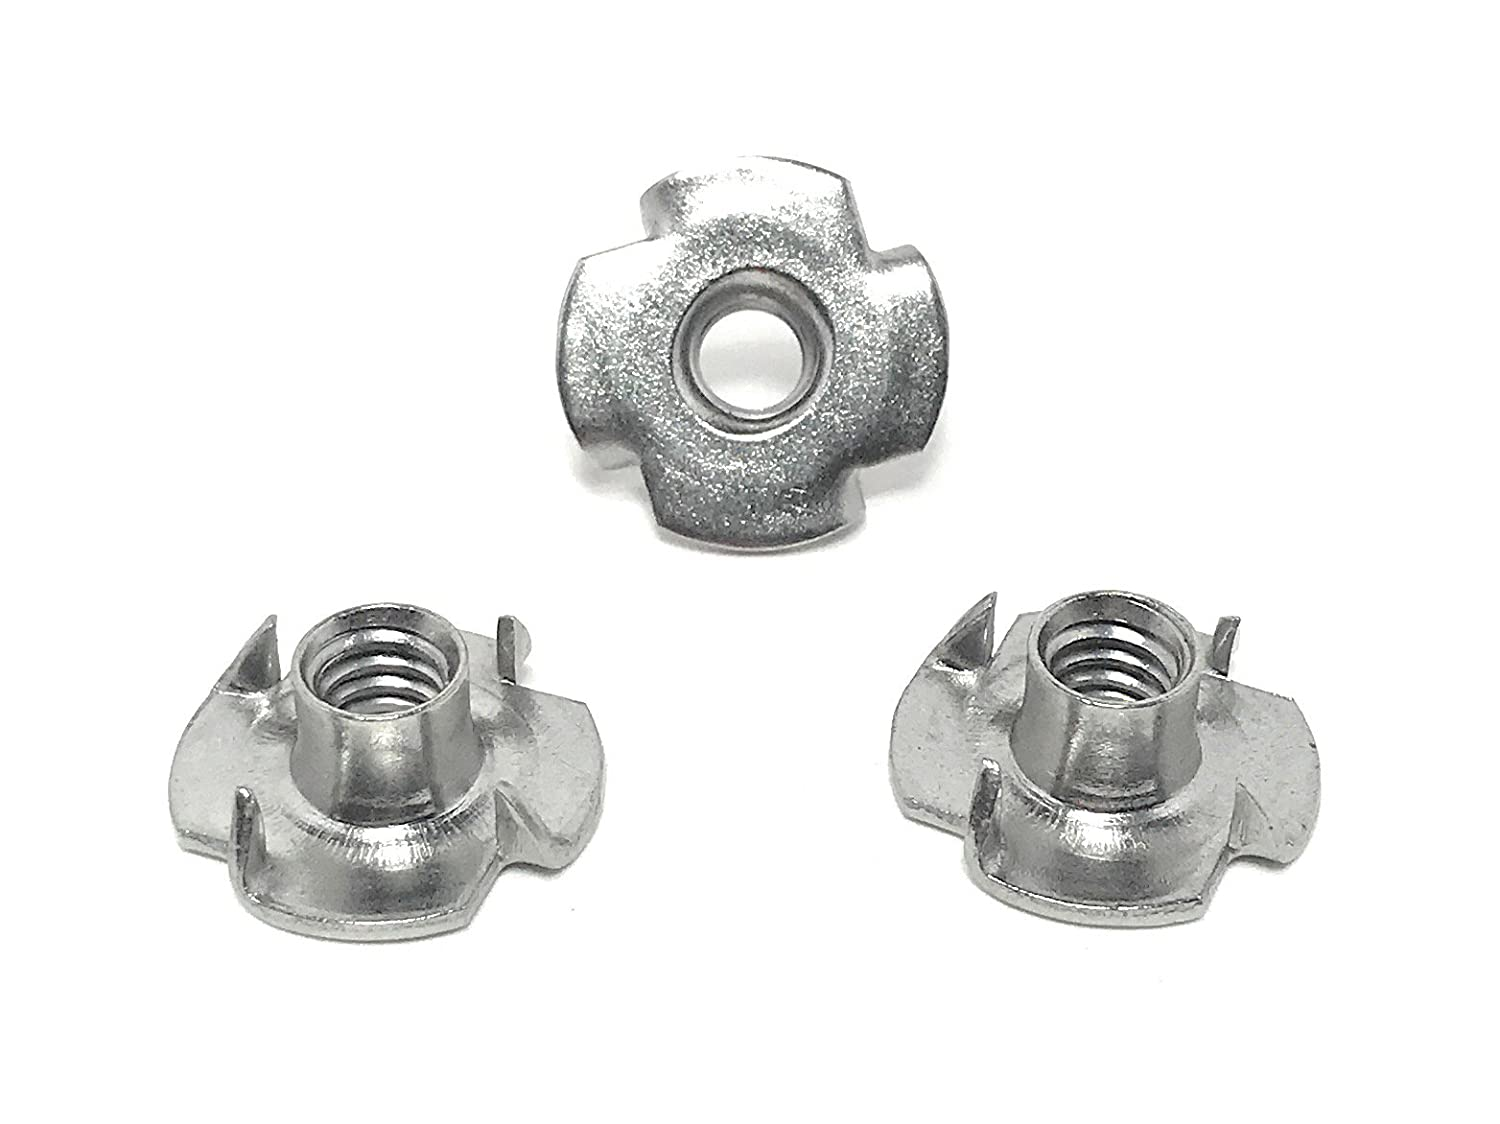 T-NUT Stainless Steel 1 4-20x1 4 Nuts Prong Tee Thread Max 49% OFF Nippon regular agency 4-20